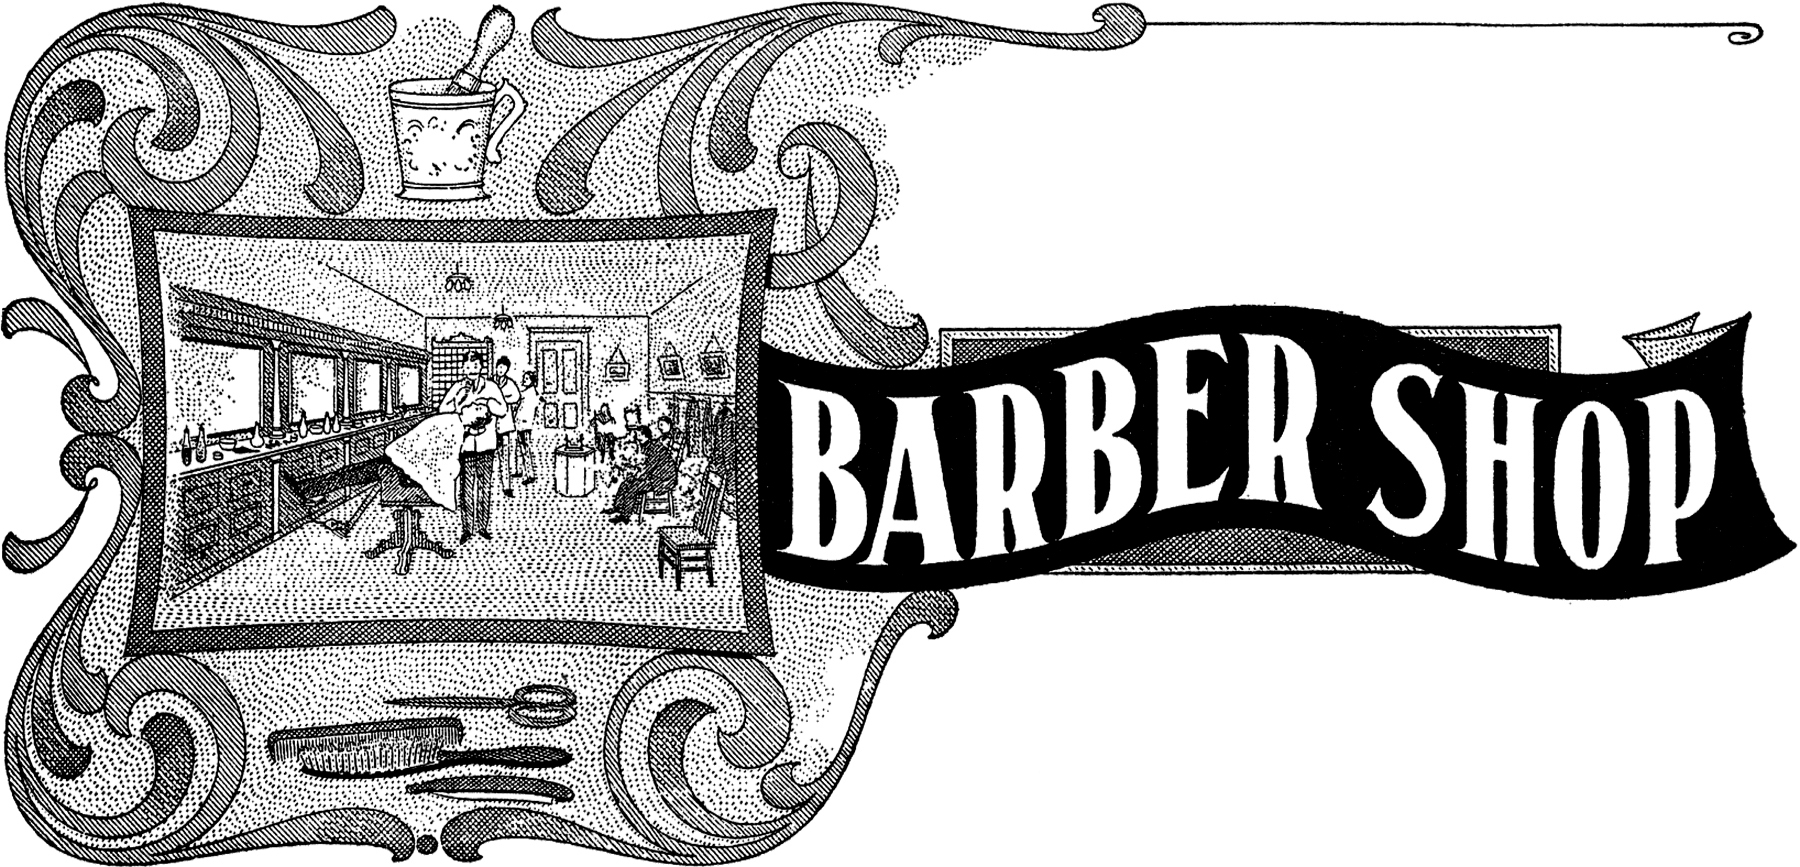 Antique barber shop sign - Vintage Barber Shop Sign Image Graphicsfairy